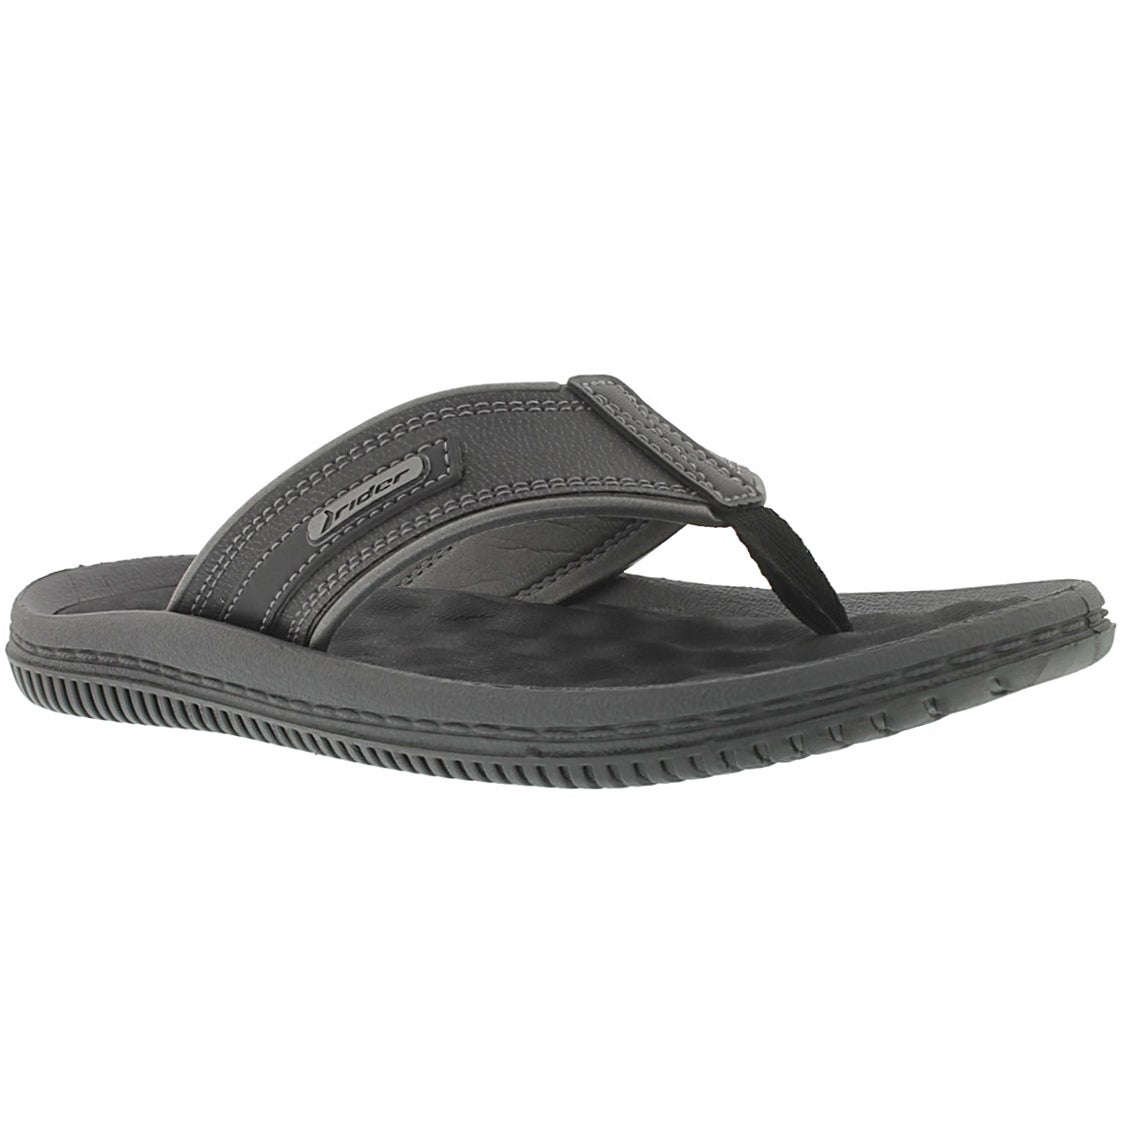 Mns Drift II black/grey flip-flop